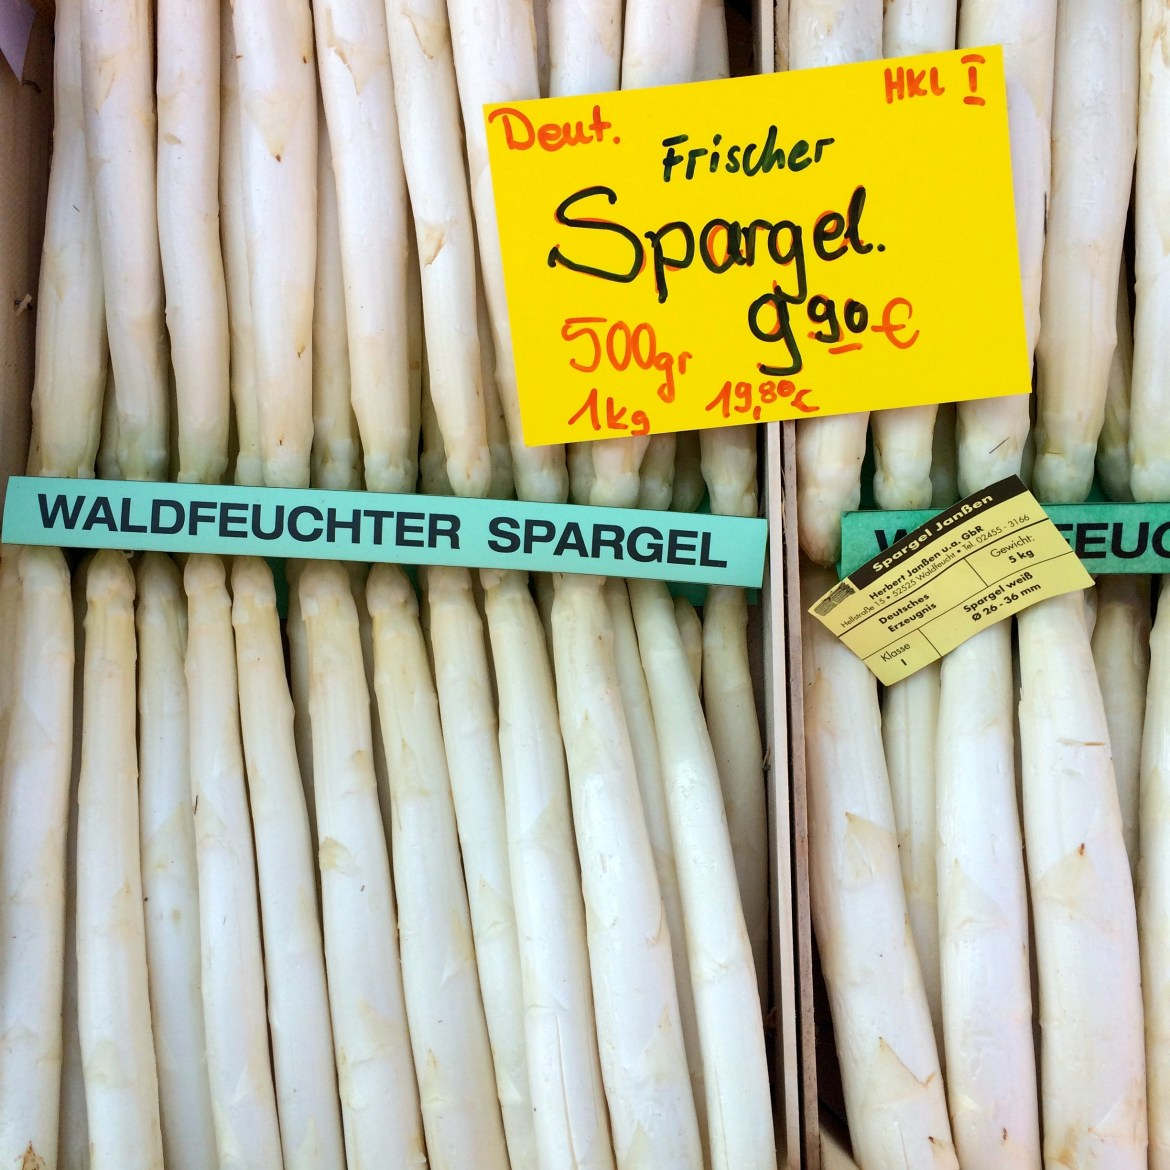 White asparagus at the farmers' market